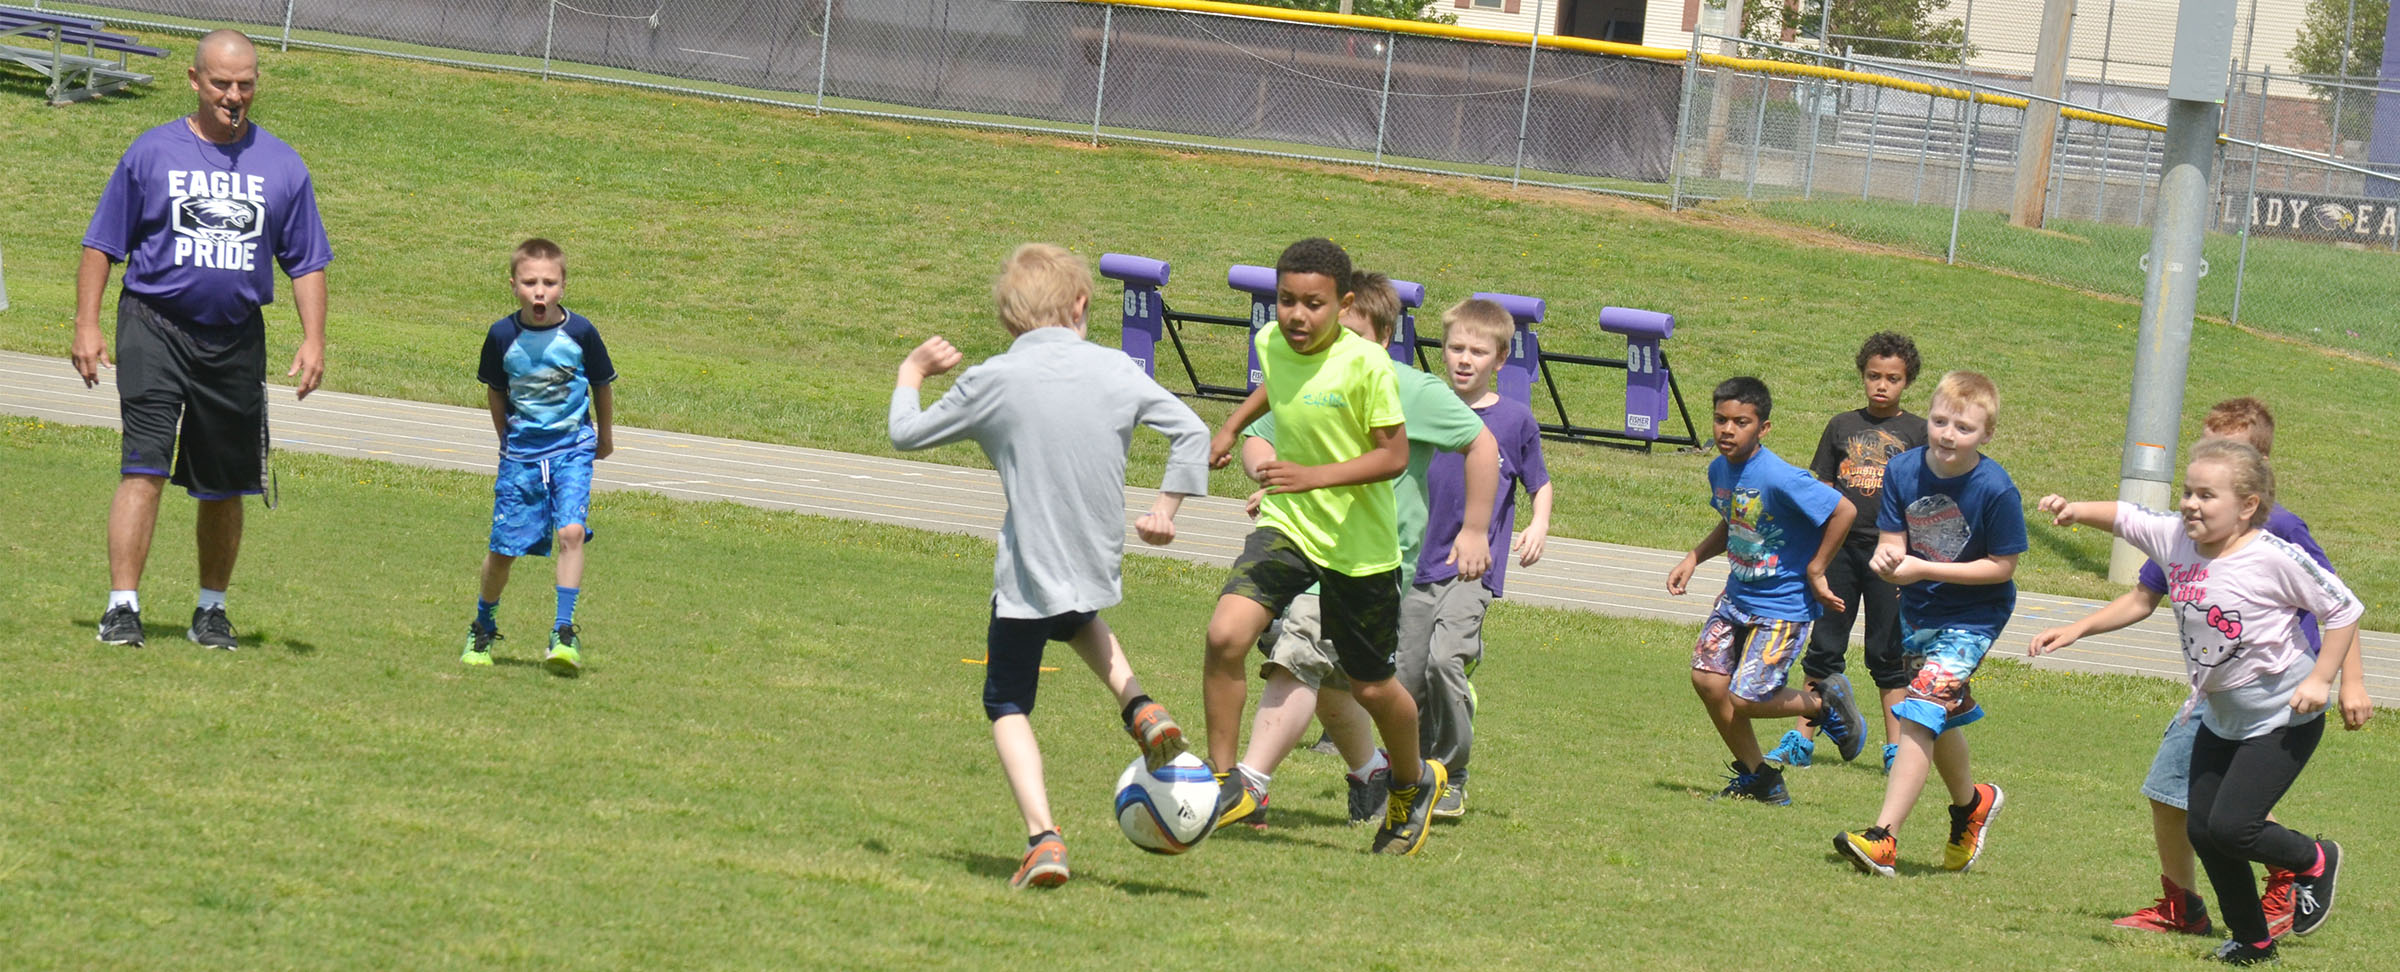 CES third-graders battle in a soccer game.